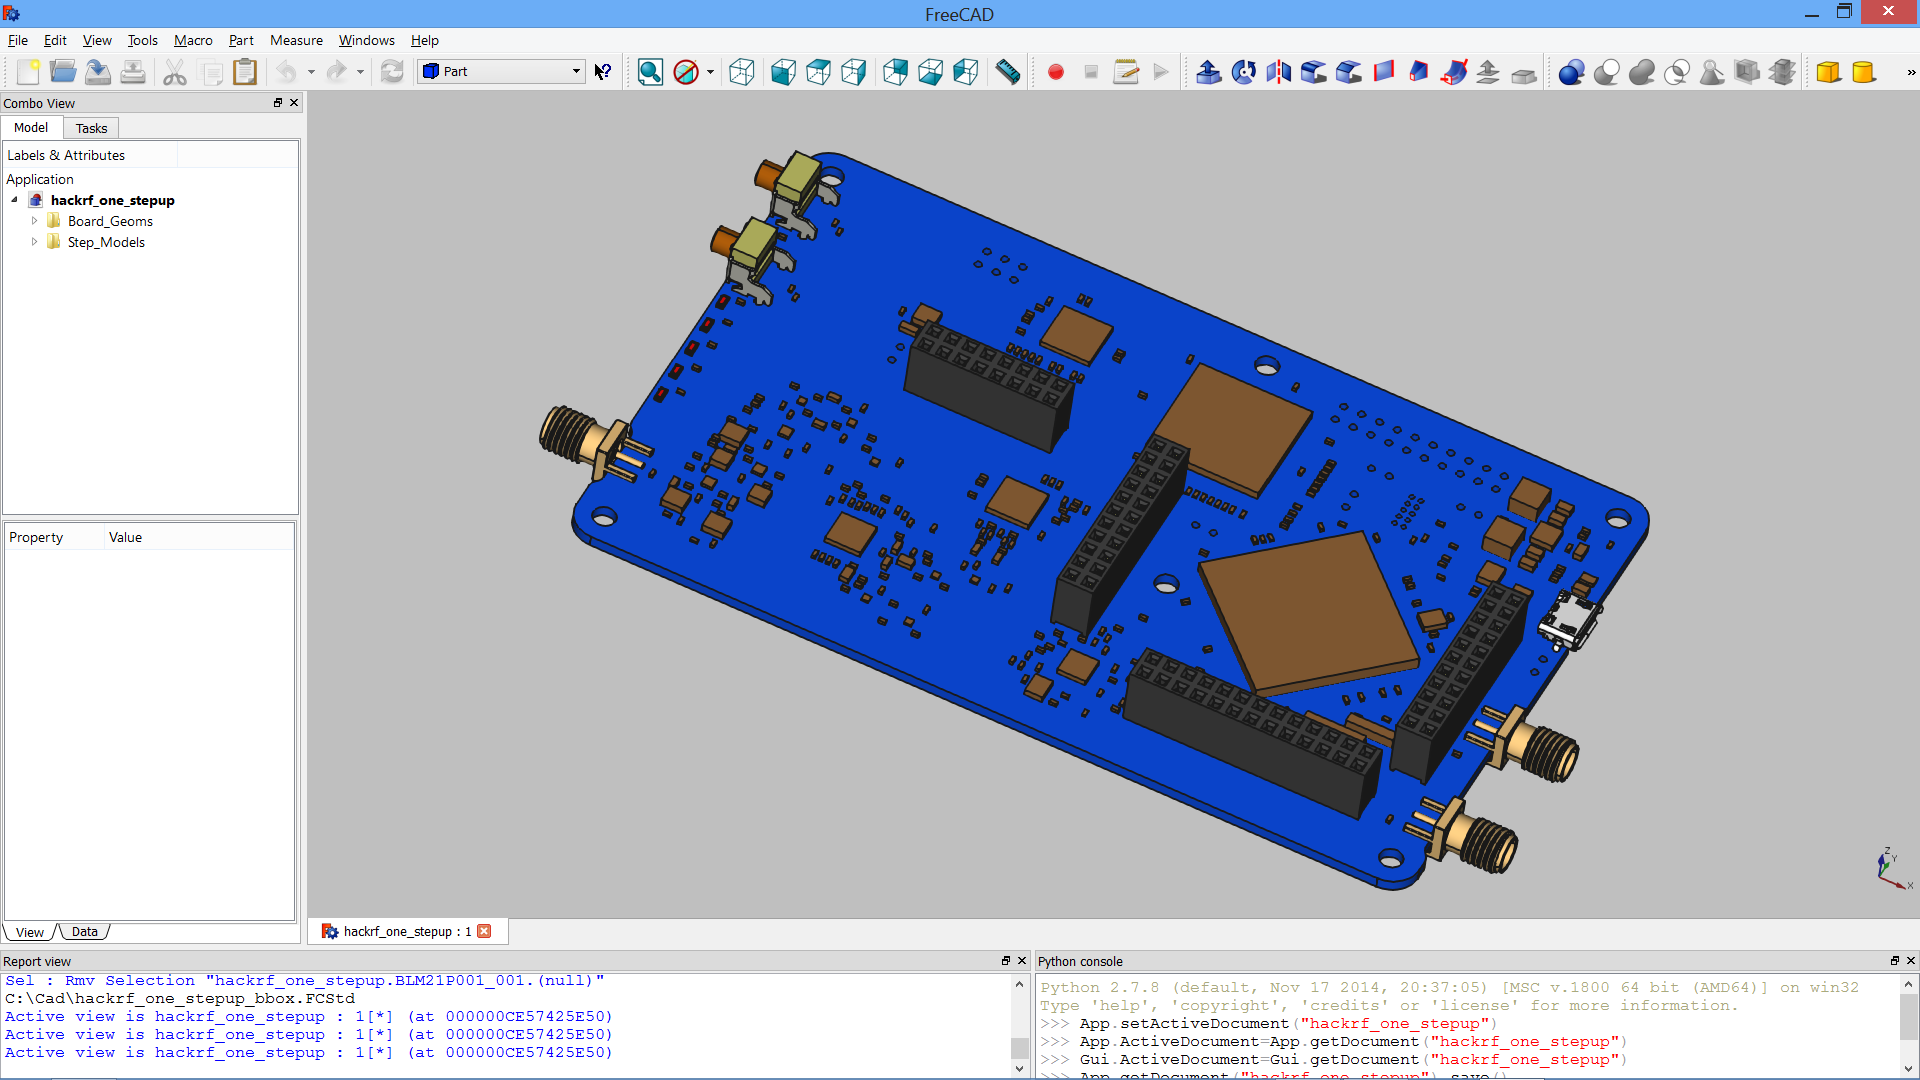 KiCAD photo realistic 3D rendering? - Page 2